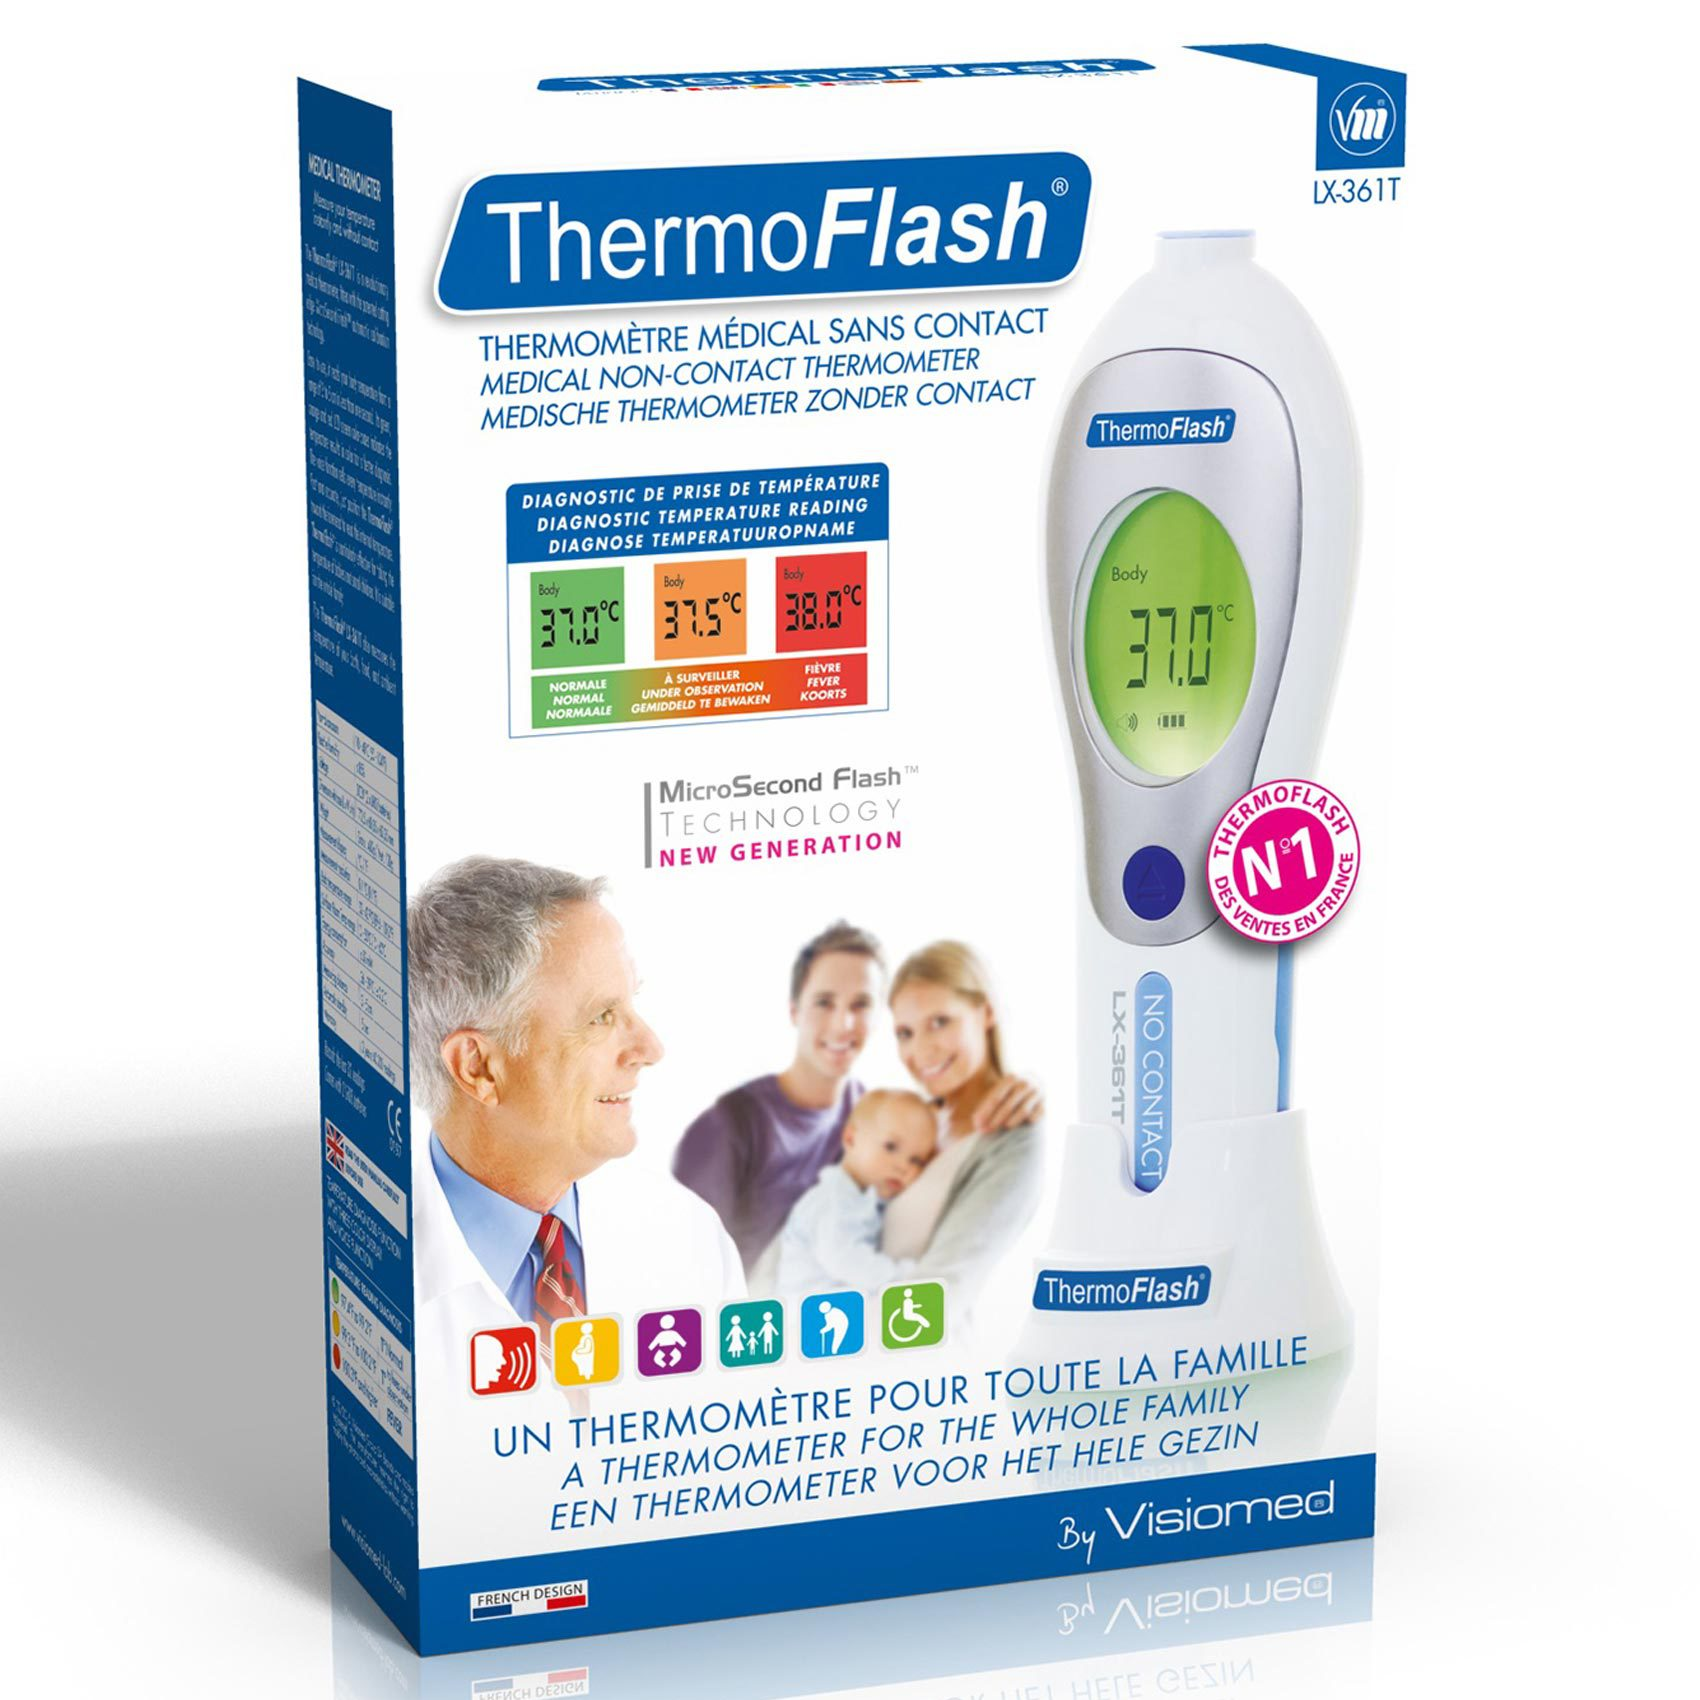 VISIOMED THERMOMETER LX-361T